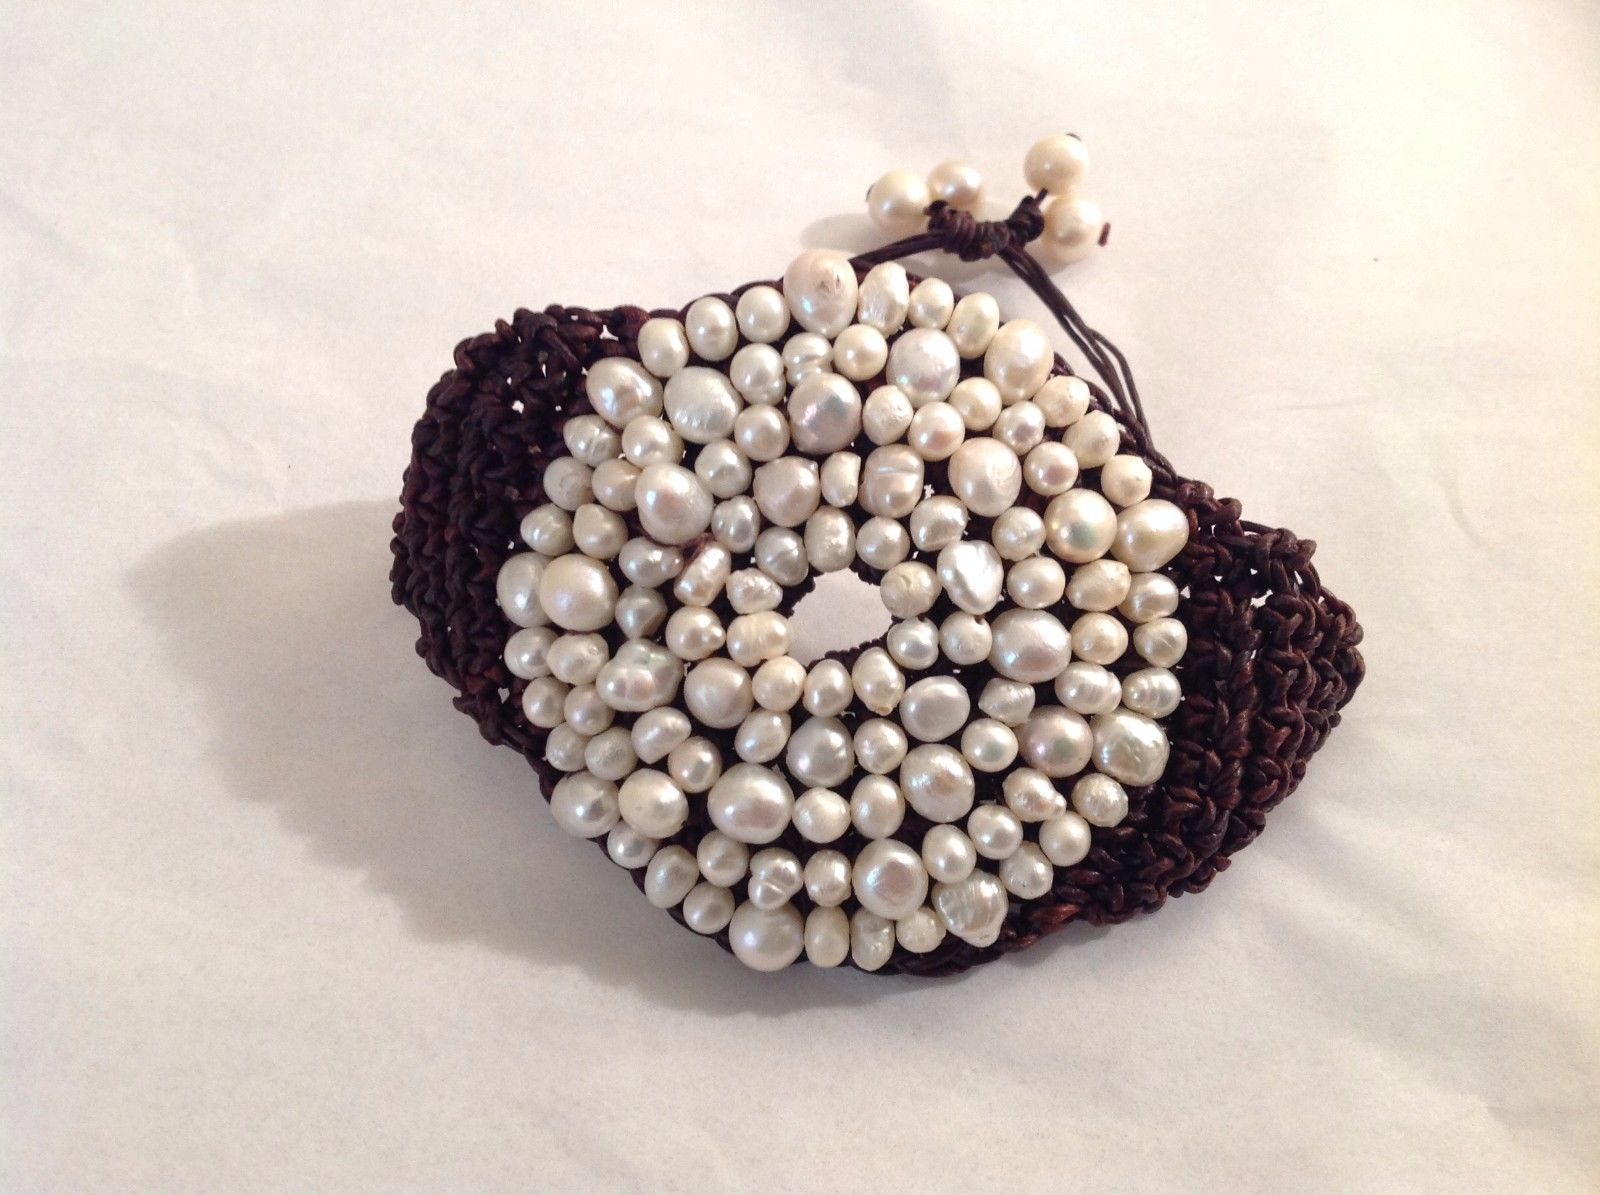 NEW Geranium Wide Woven Brown Bracelet Genuine Pearls NWT New With Tag 2.25""